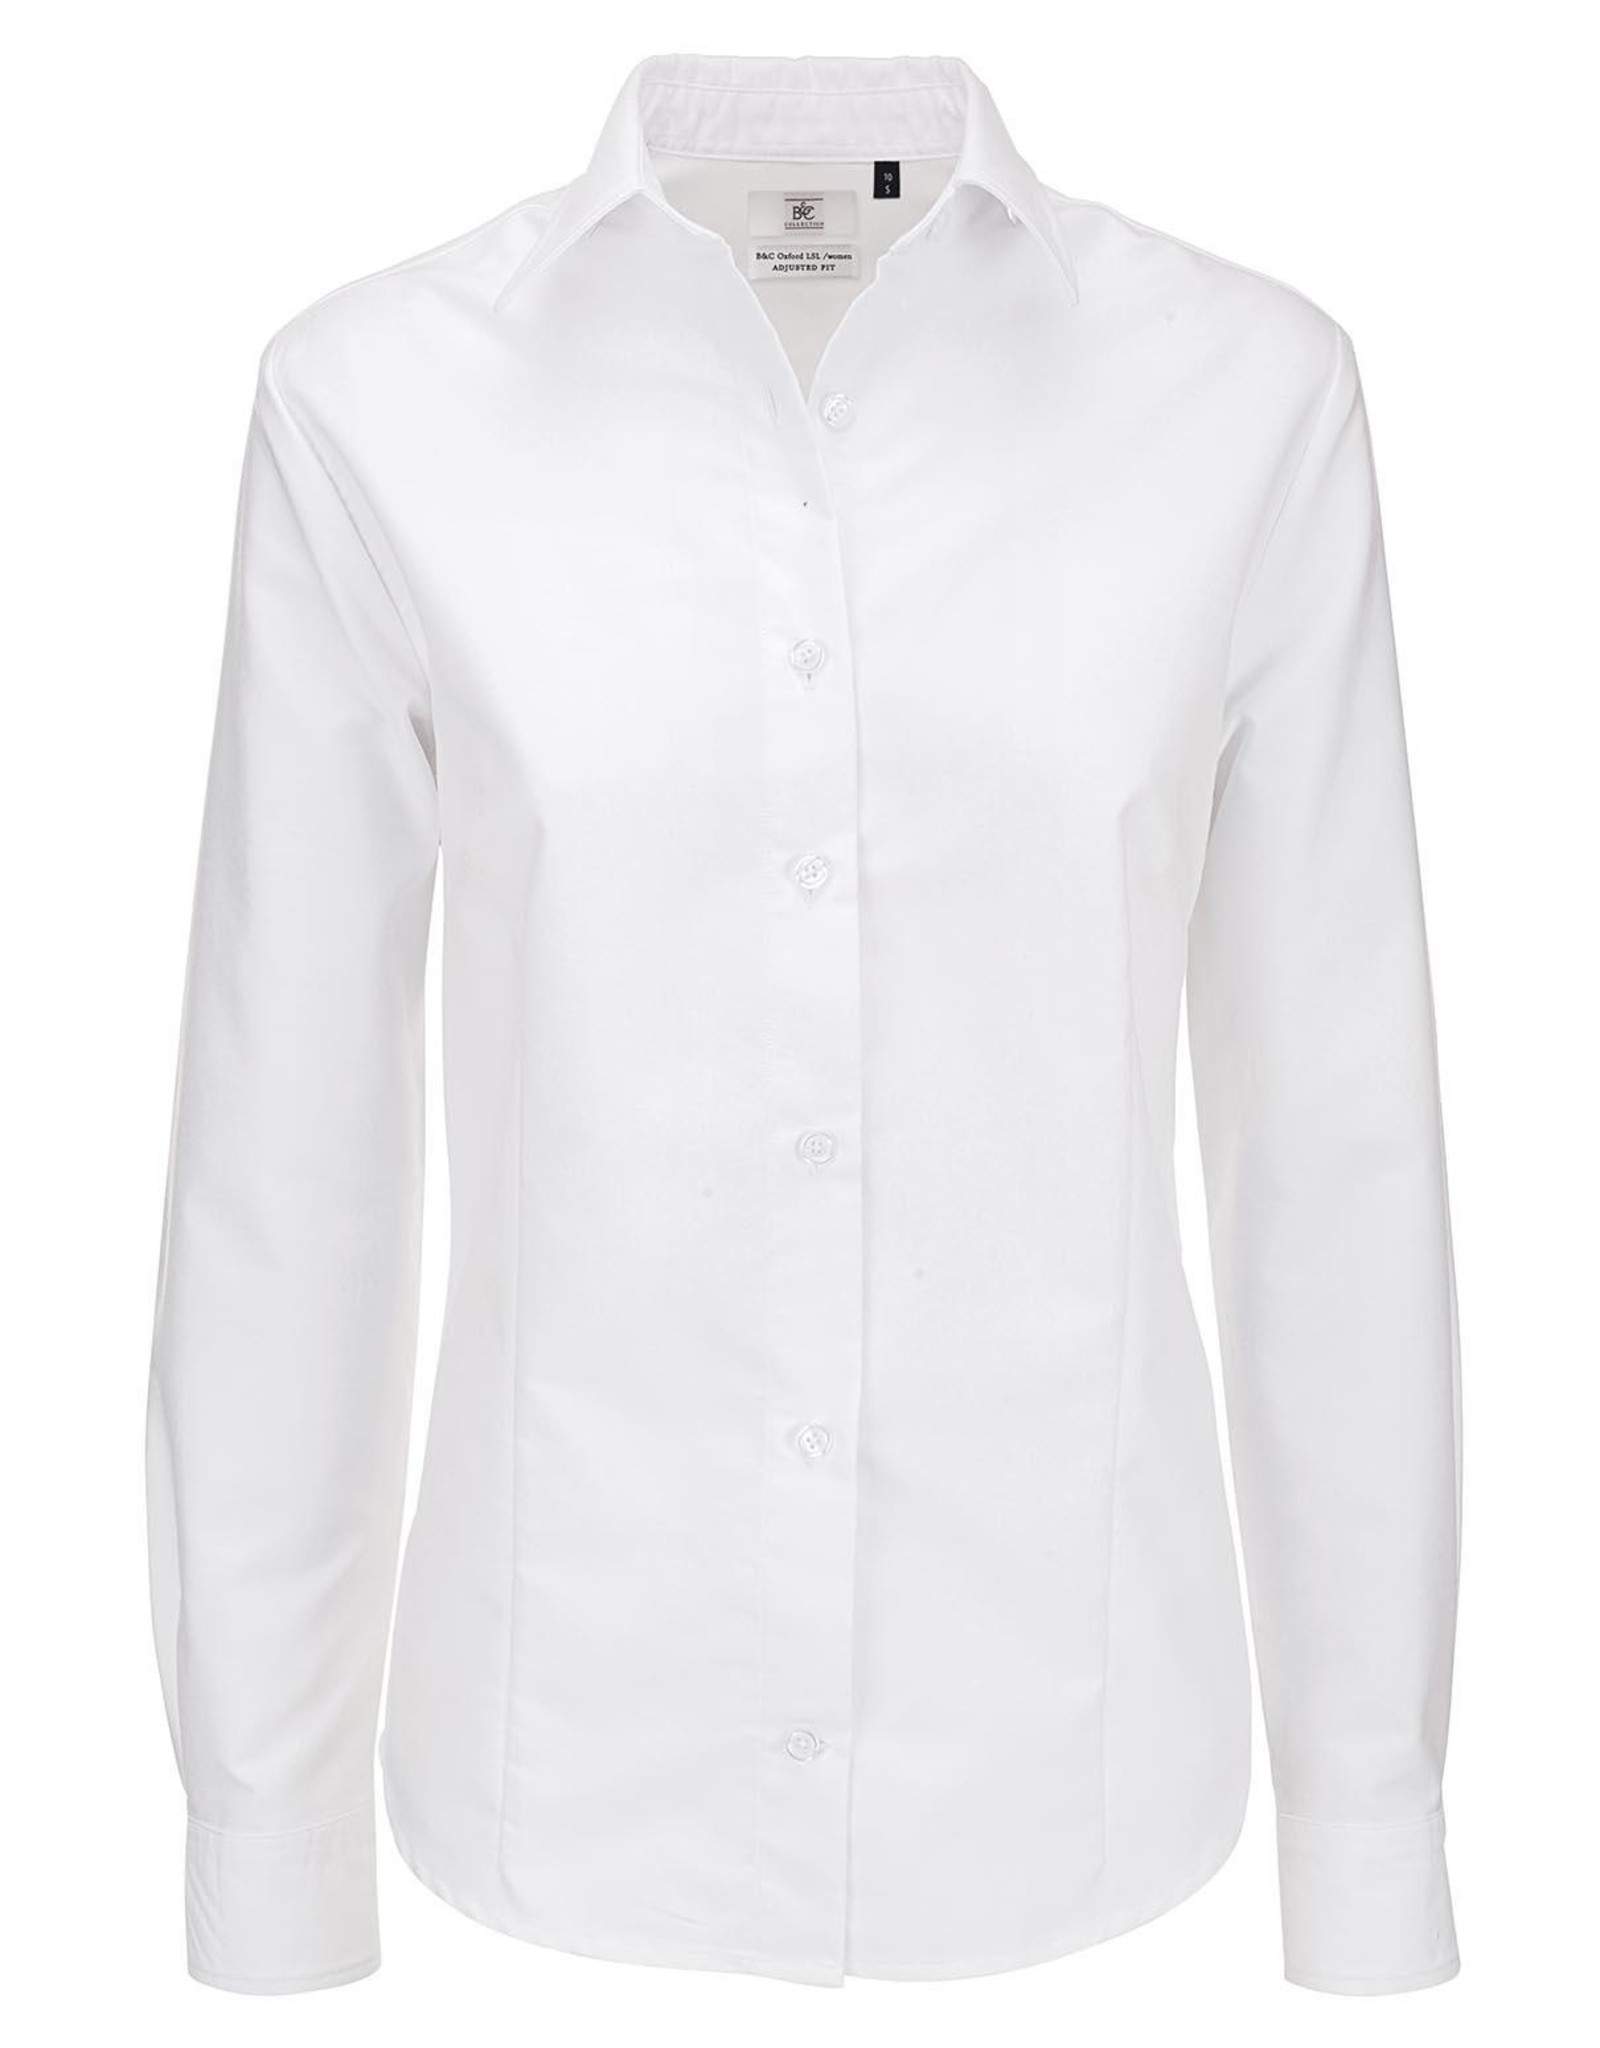 B&C DAMES BLOUSE lange mouw Oxford wit